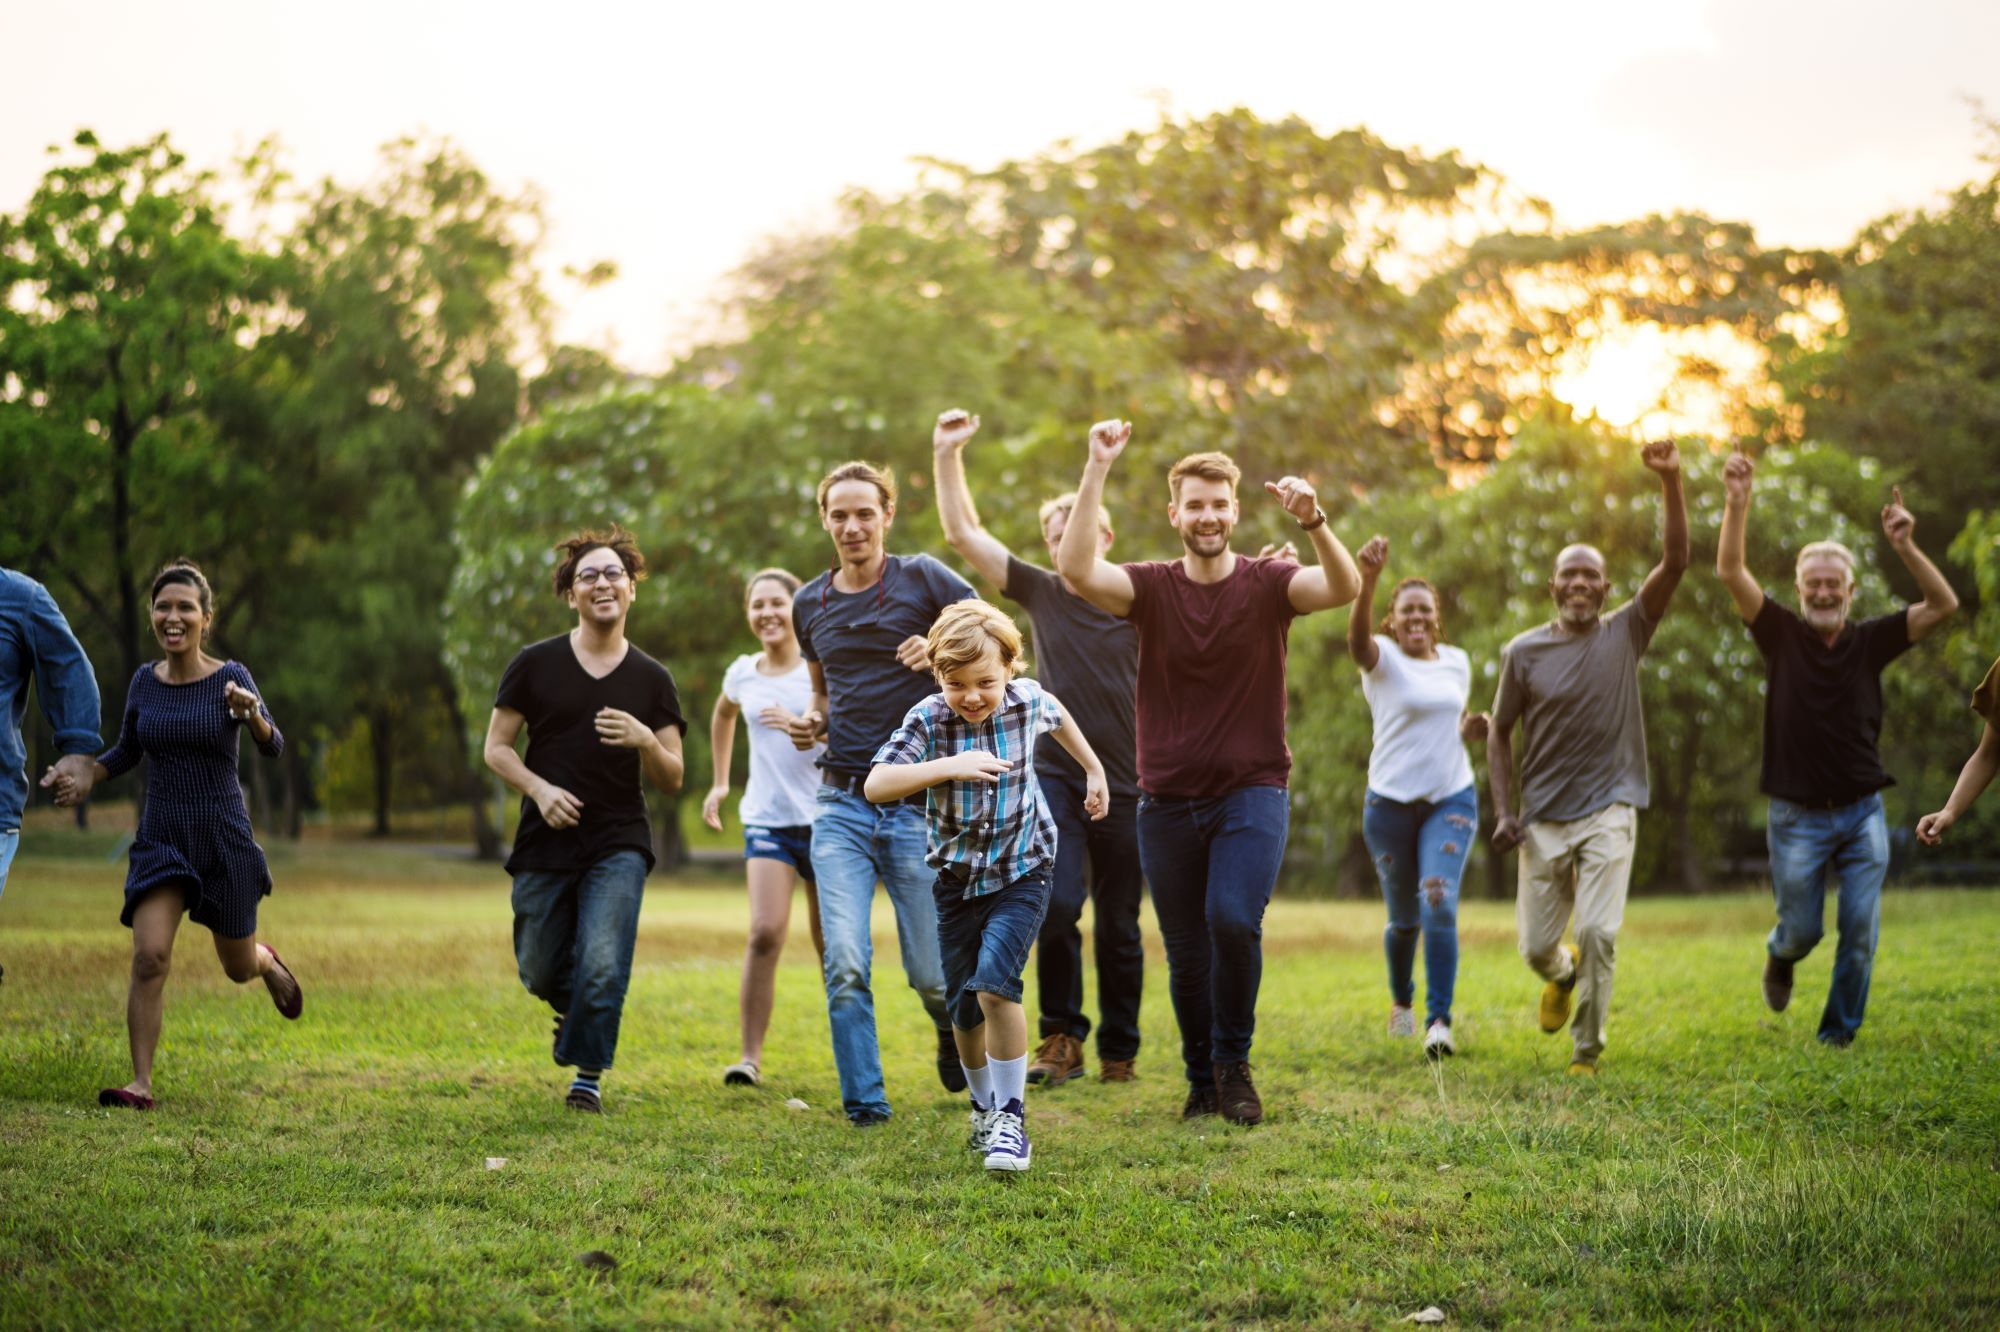 Group of people walking and running playfully in the park